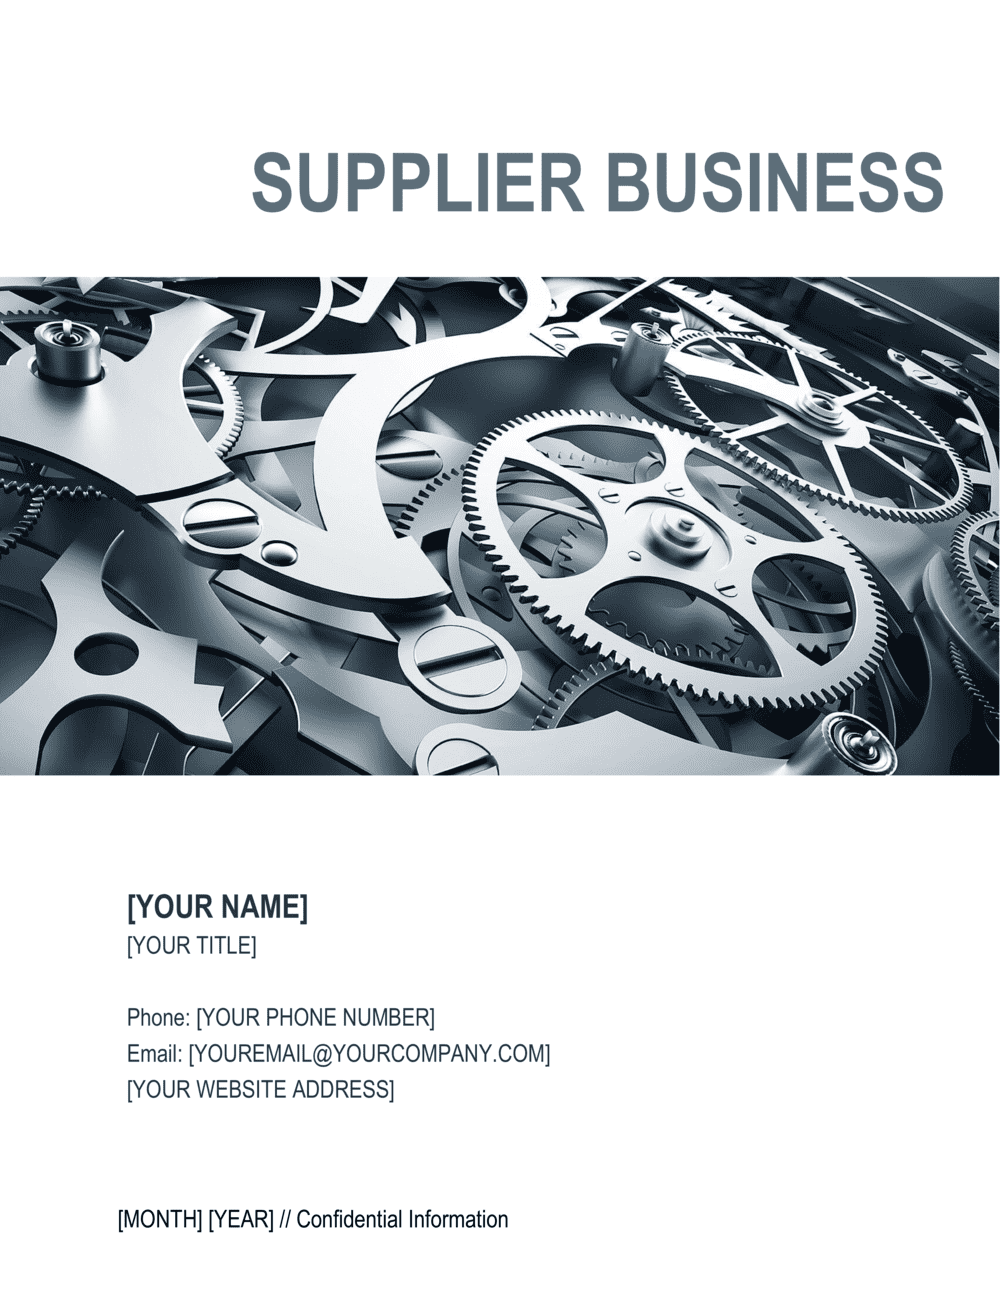 Business-in-a-Box's Supplier Business Plan Template